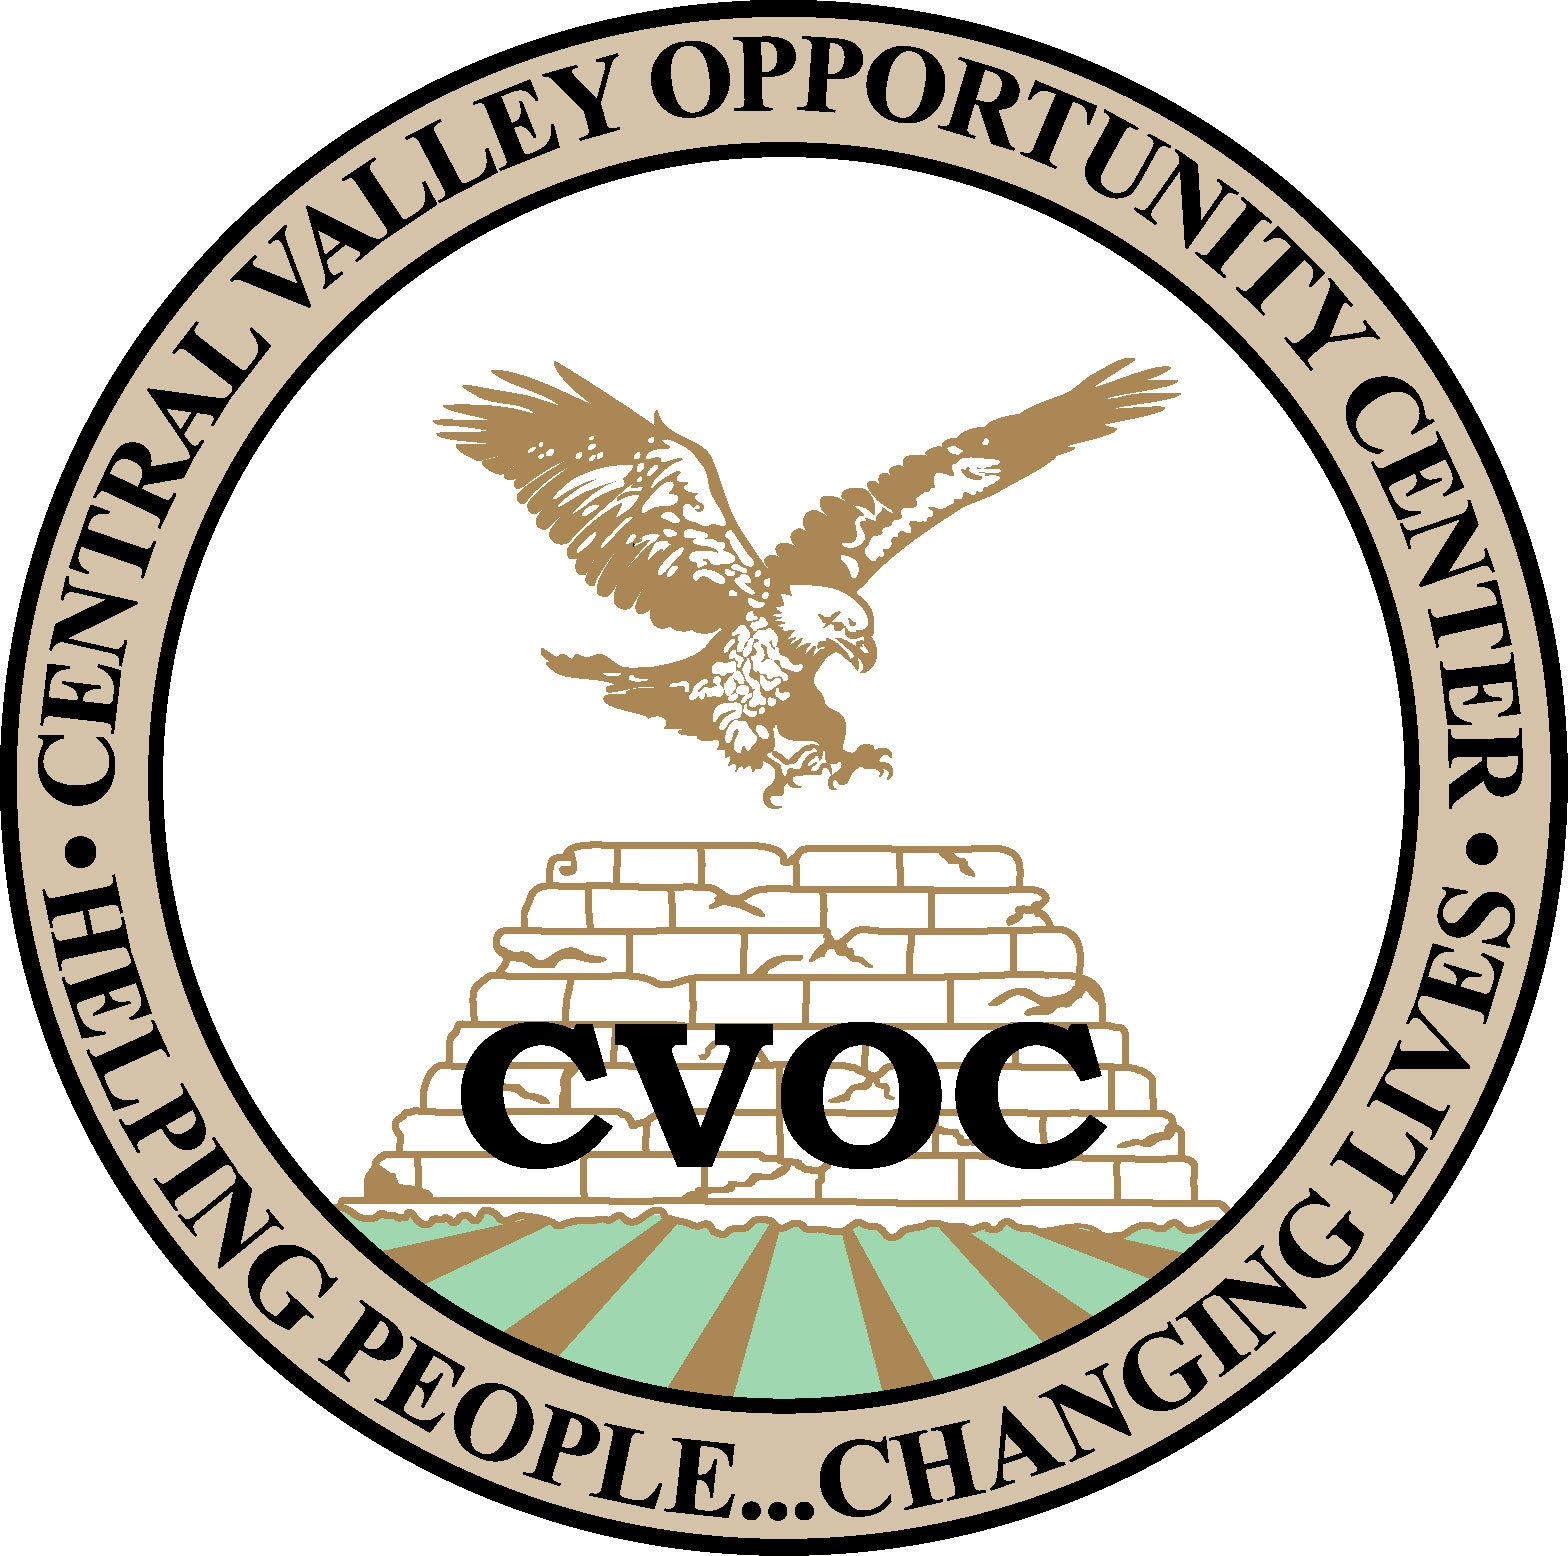 Central Valley Opportunity Center Logo